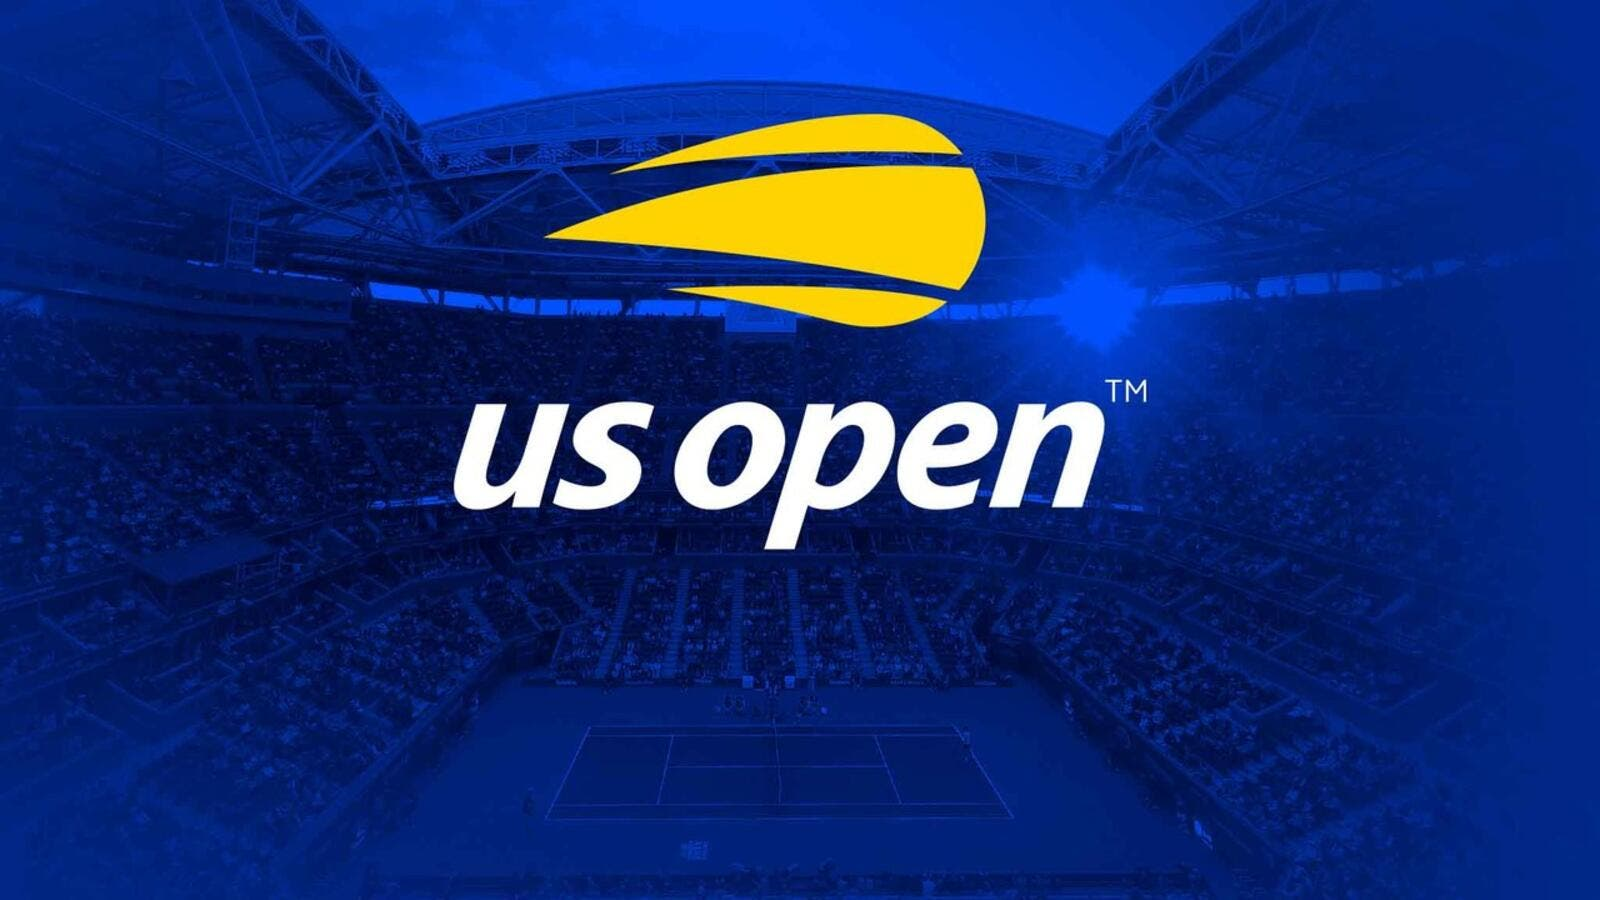 ATP, WTA suspend tours until June, rankings frozen